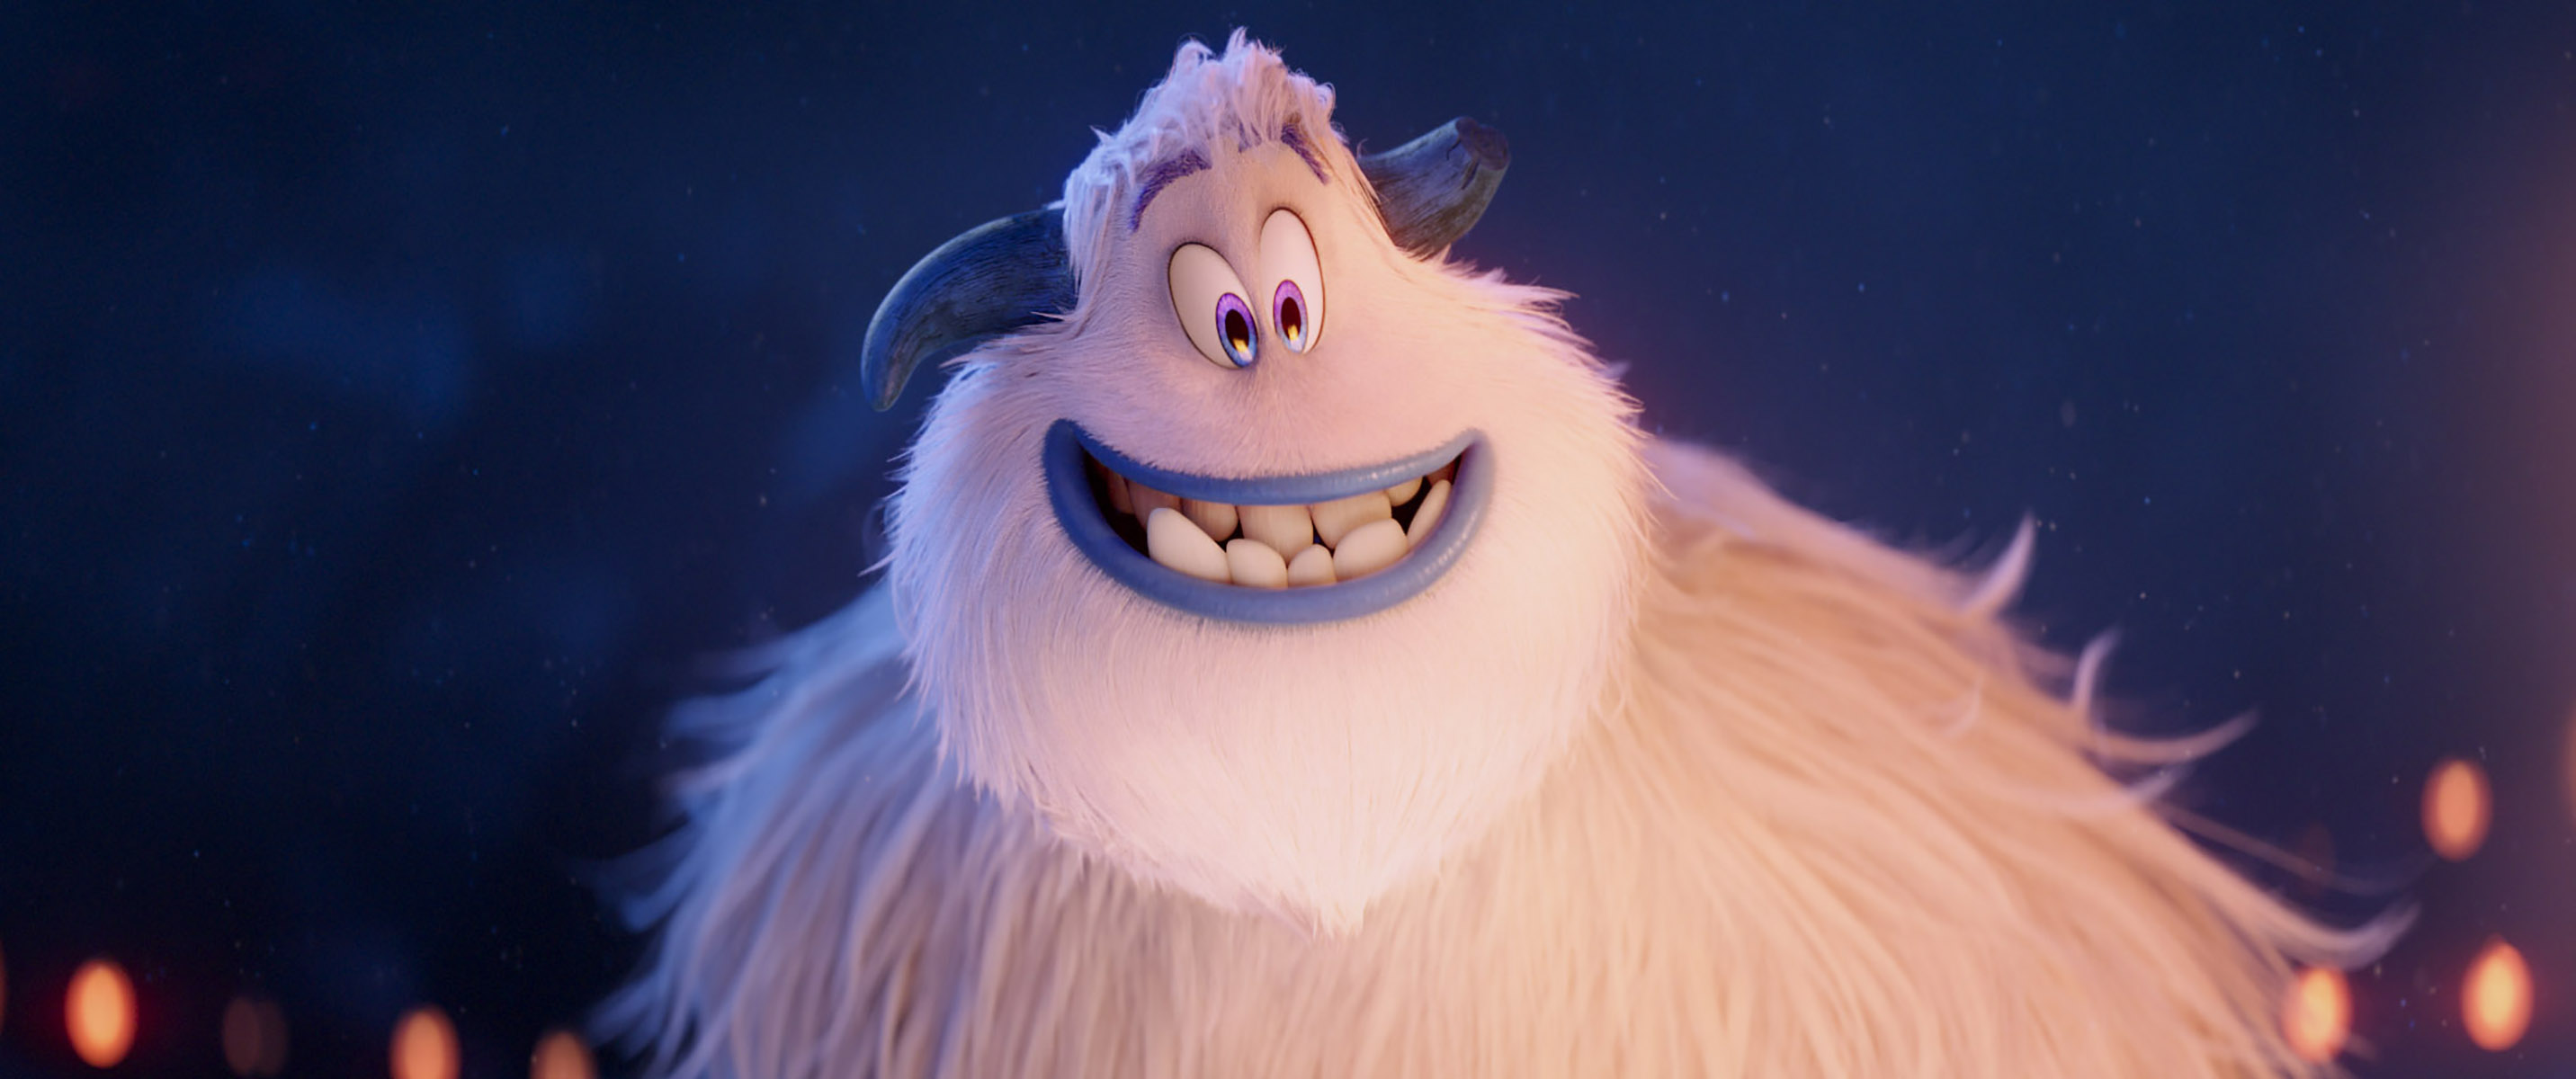 Smallfoot Gallery 13